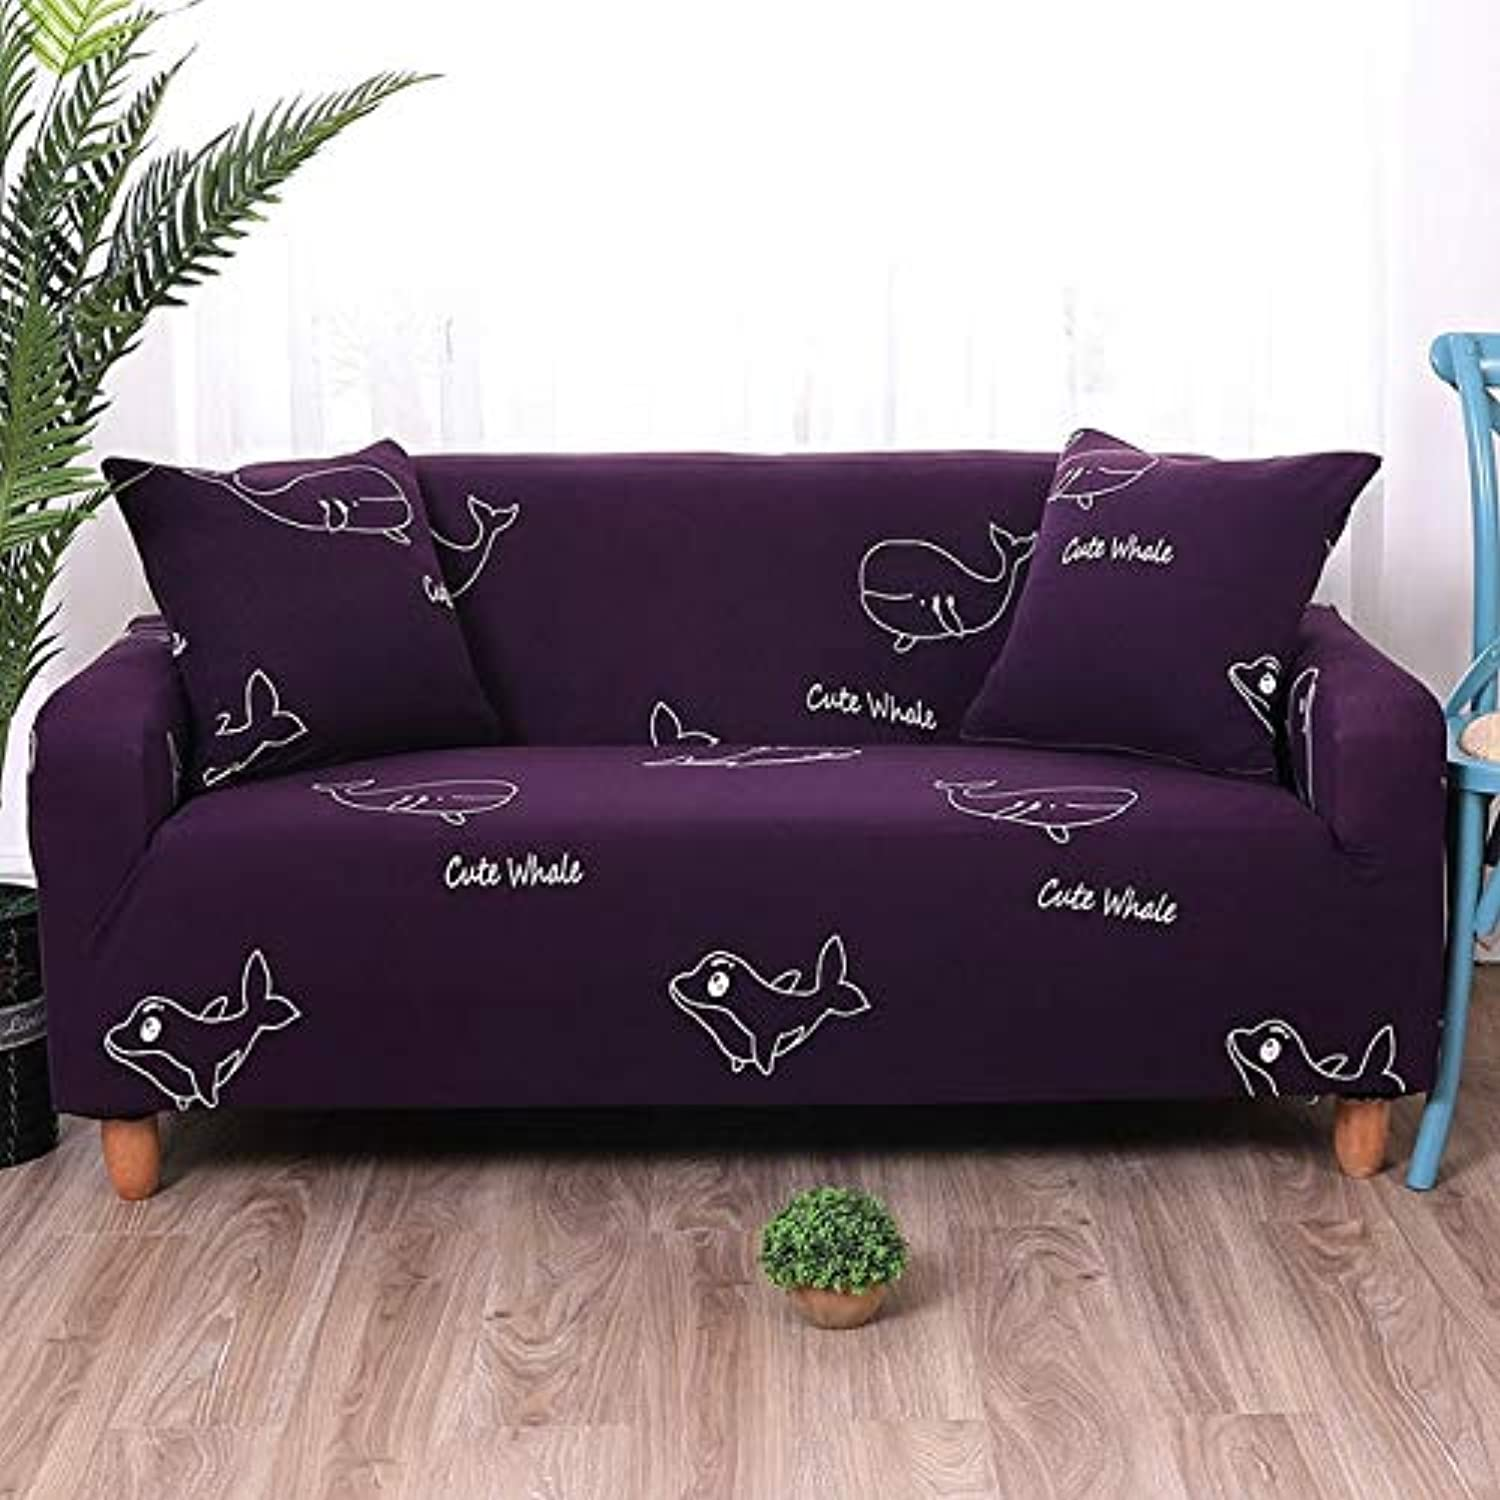 Fashion Printing Sofa Cover Spandex high Elasticity case Sofa Sofas for Living Room Removable Cleaning Essential Home   BLN-shlql, Single seat